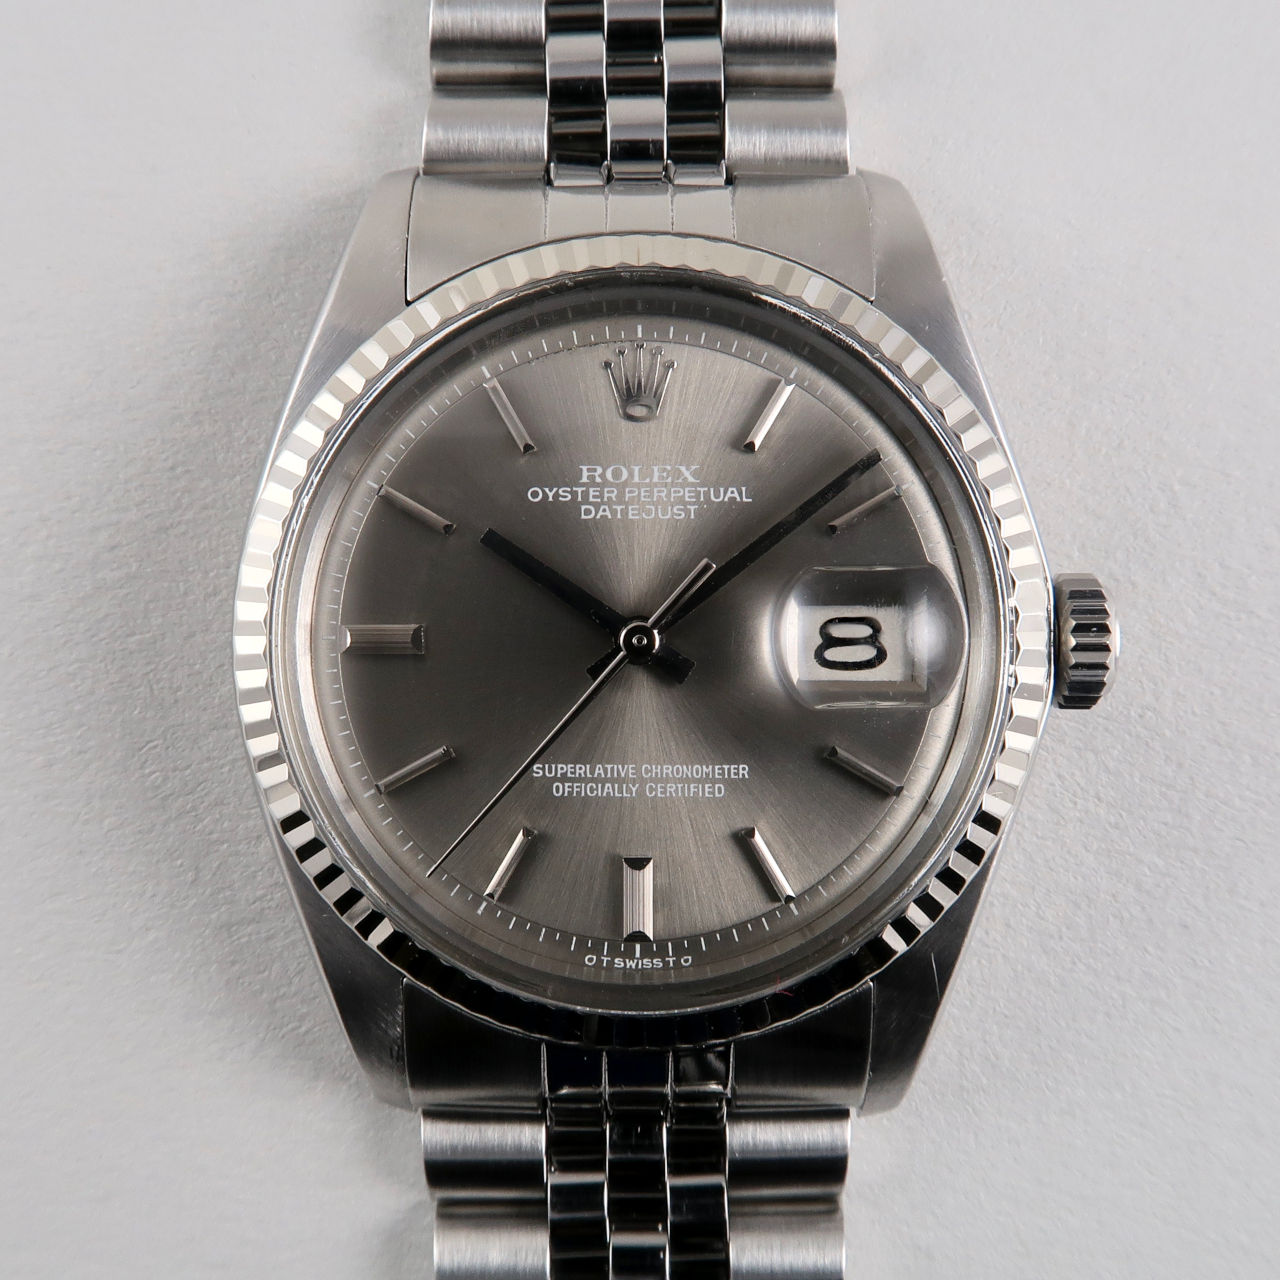 Rolex Oyster Perpetual Datejust 'Sigma' Ref.1601 dated 1972